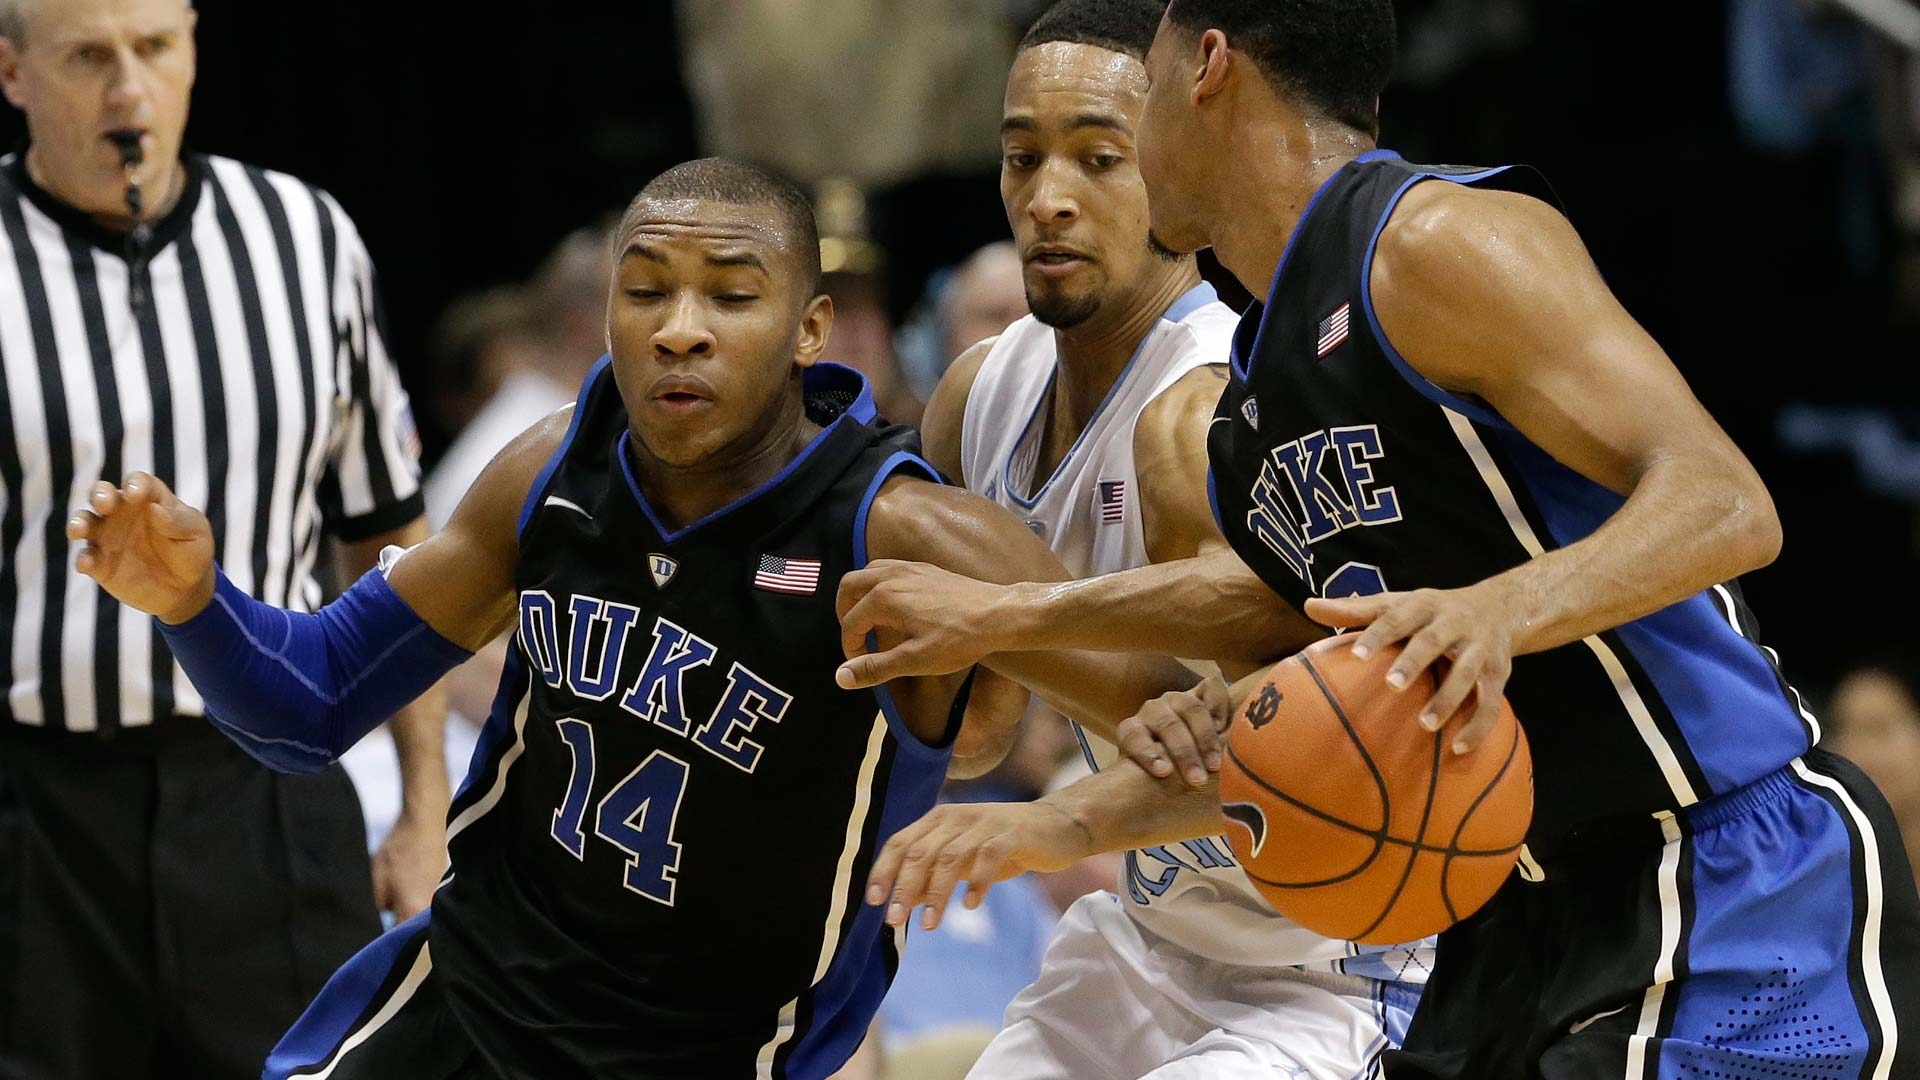 duke-north-carolina-022014-ap-ftr